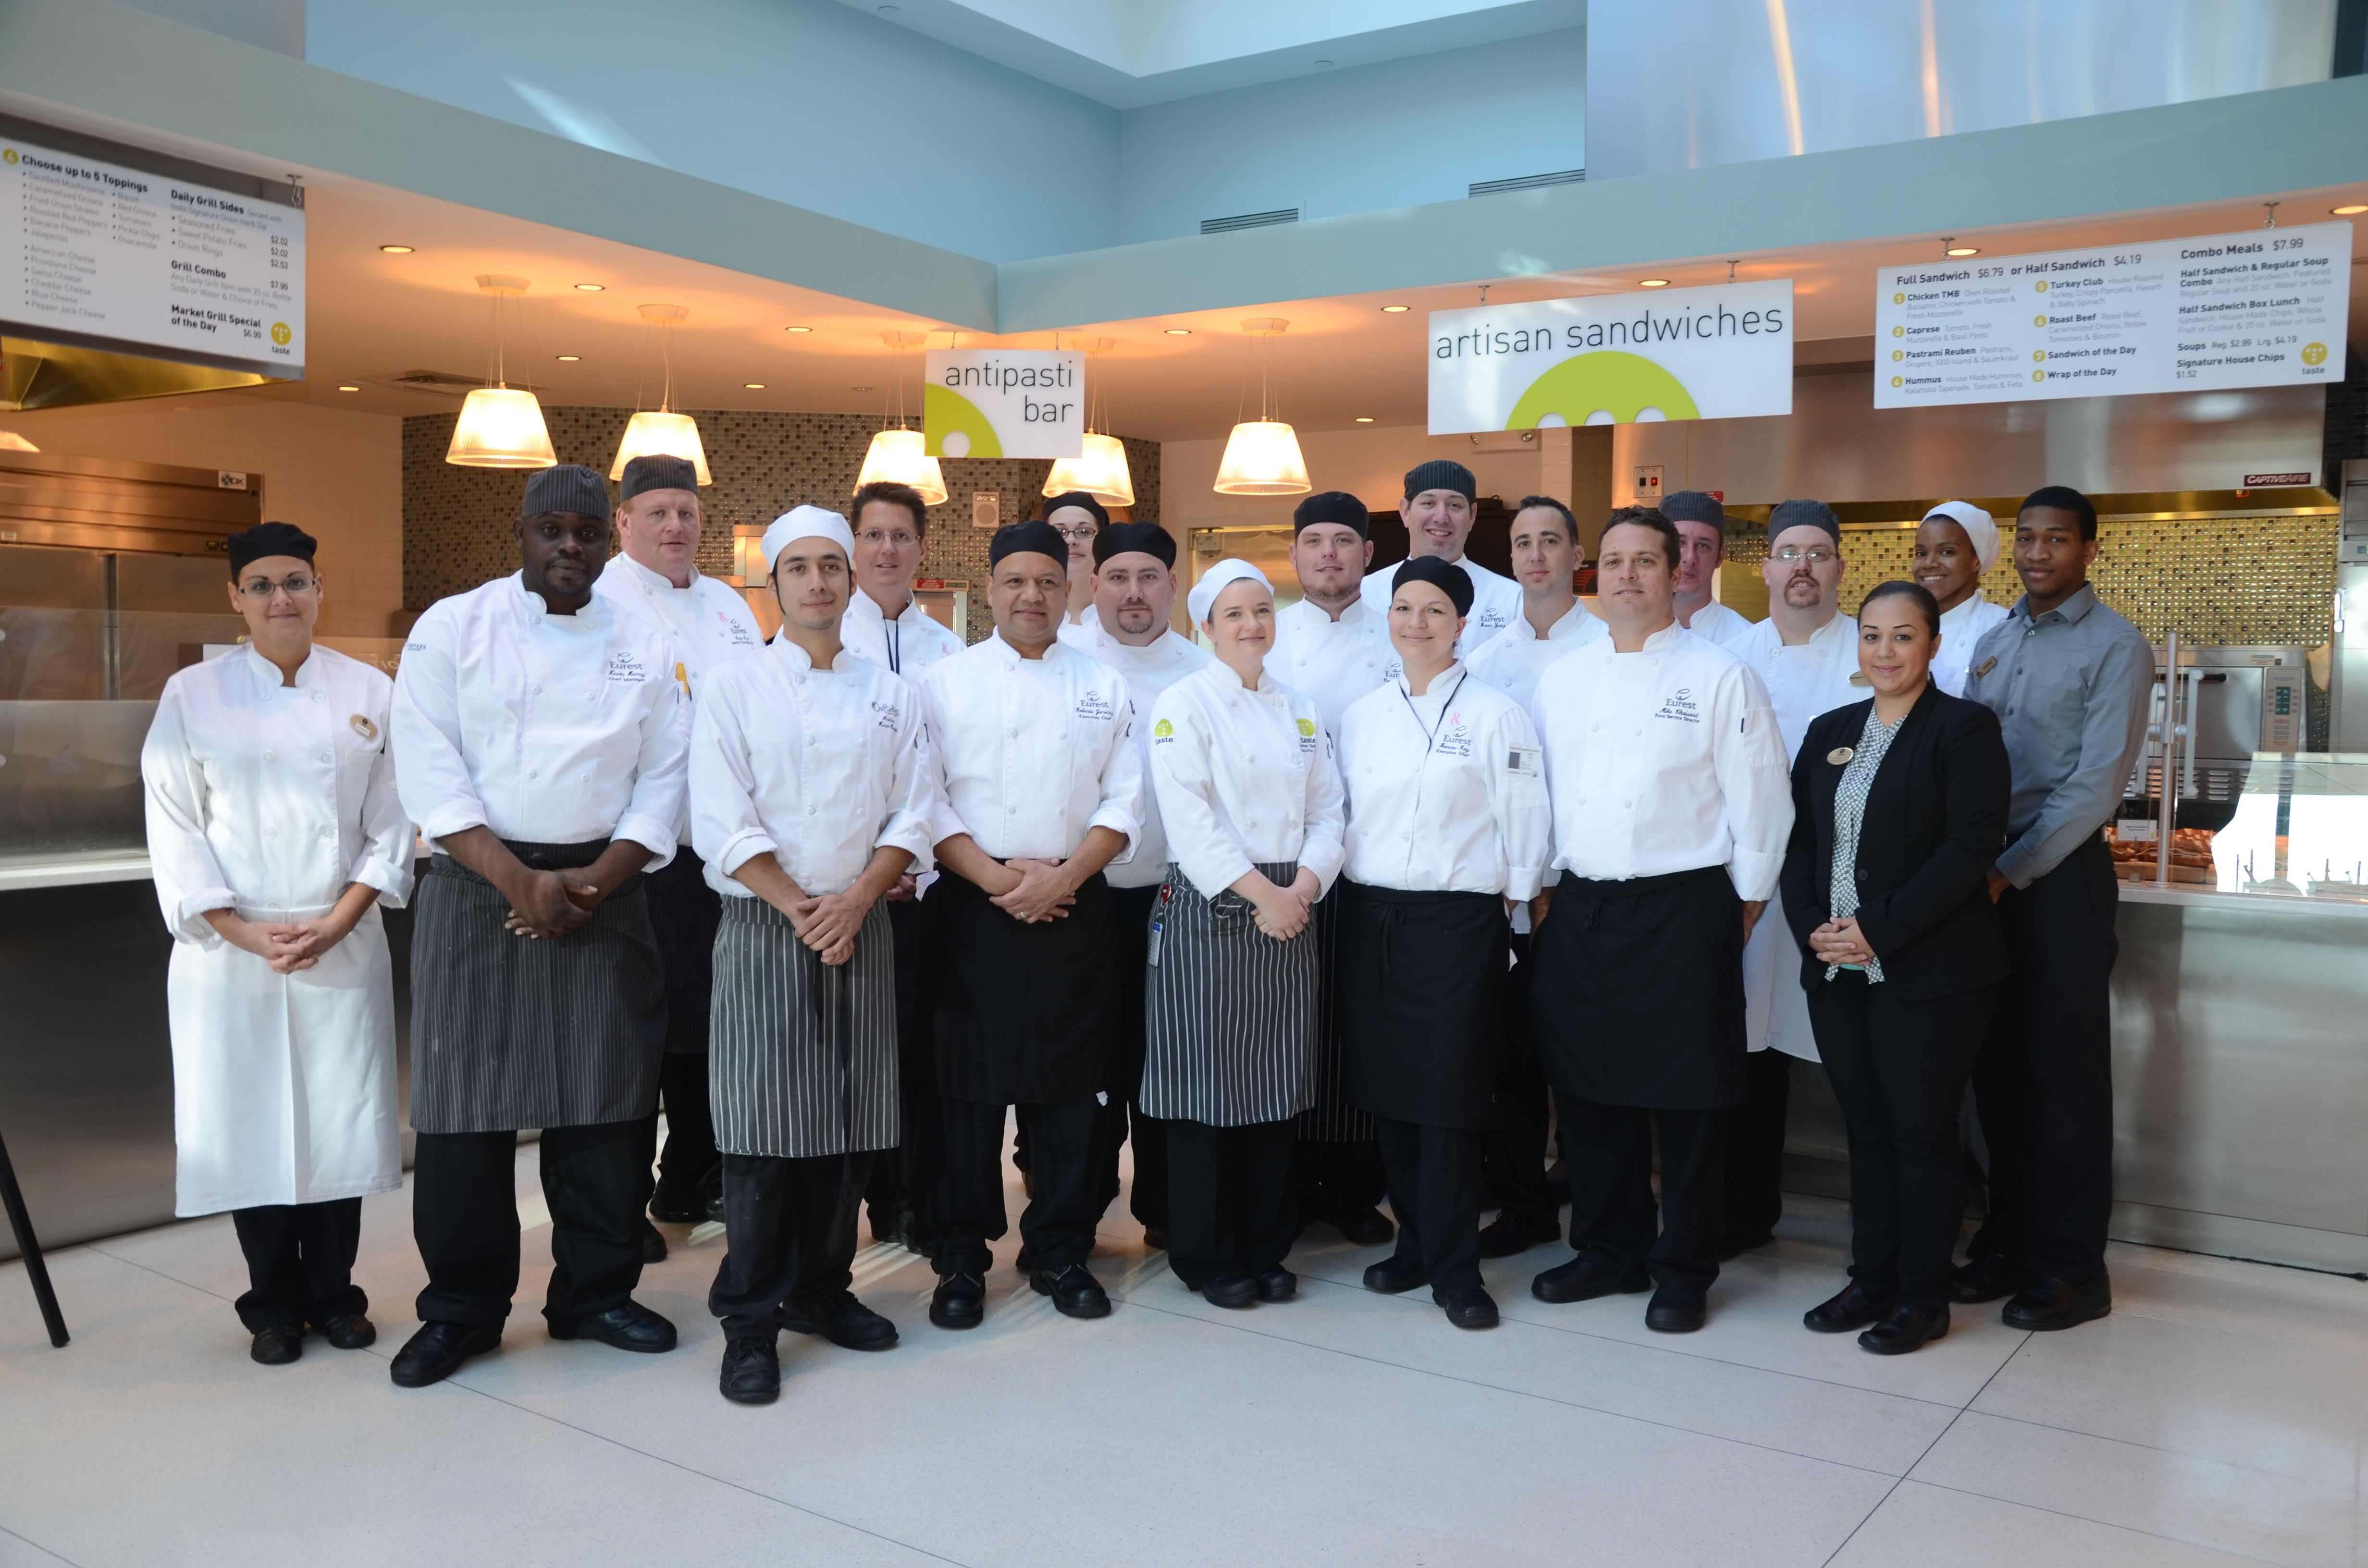 We are only as good as our staff and we are so proud of all the hard work they do nationwide! #inspirethroughfood #teamwork